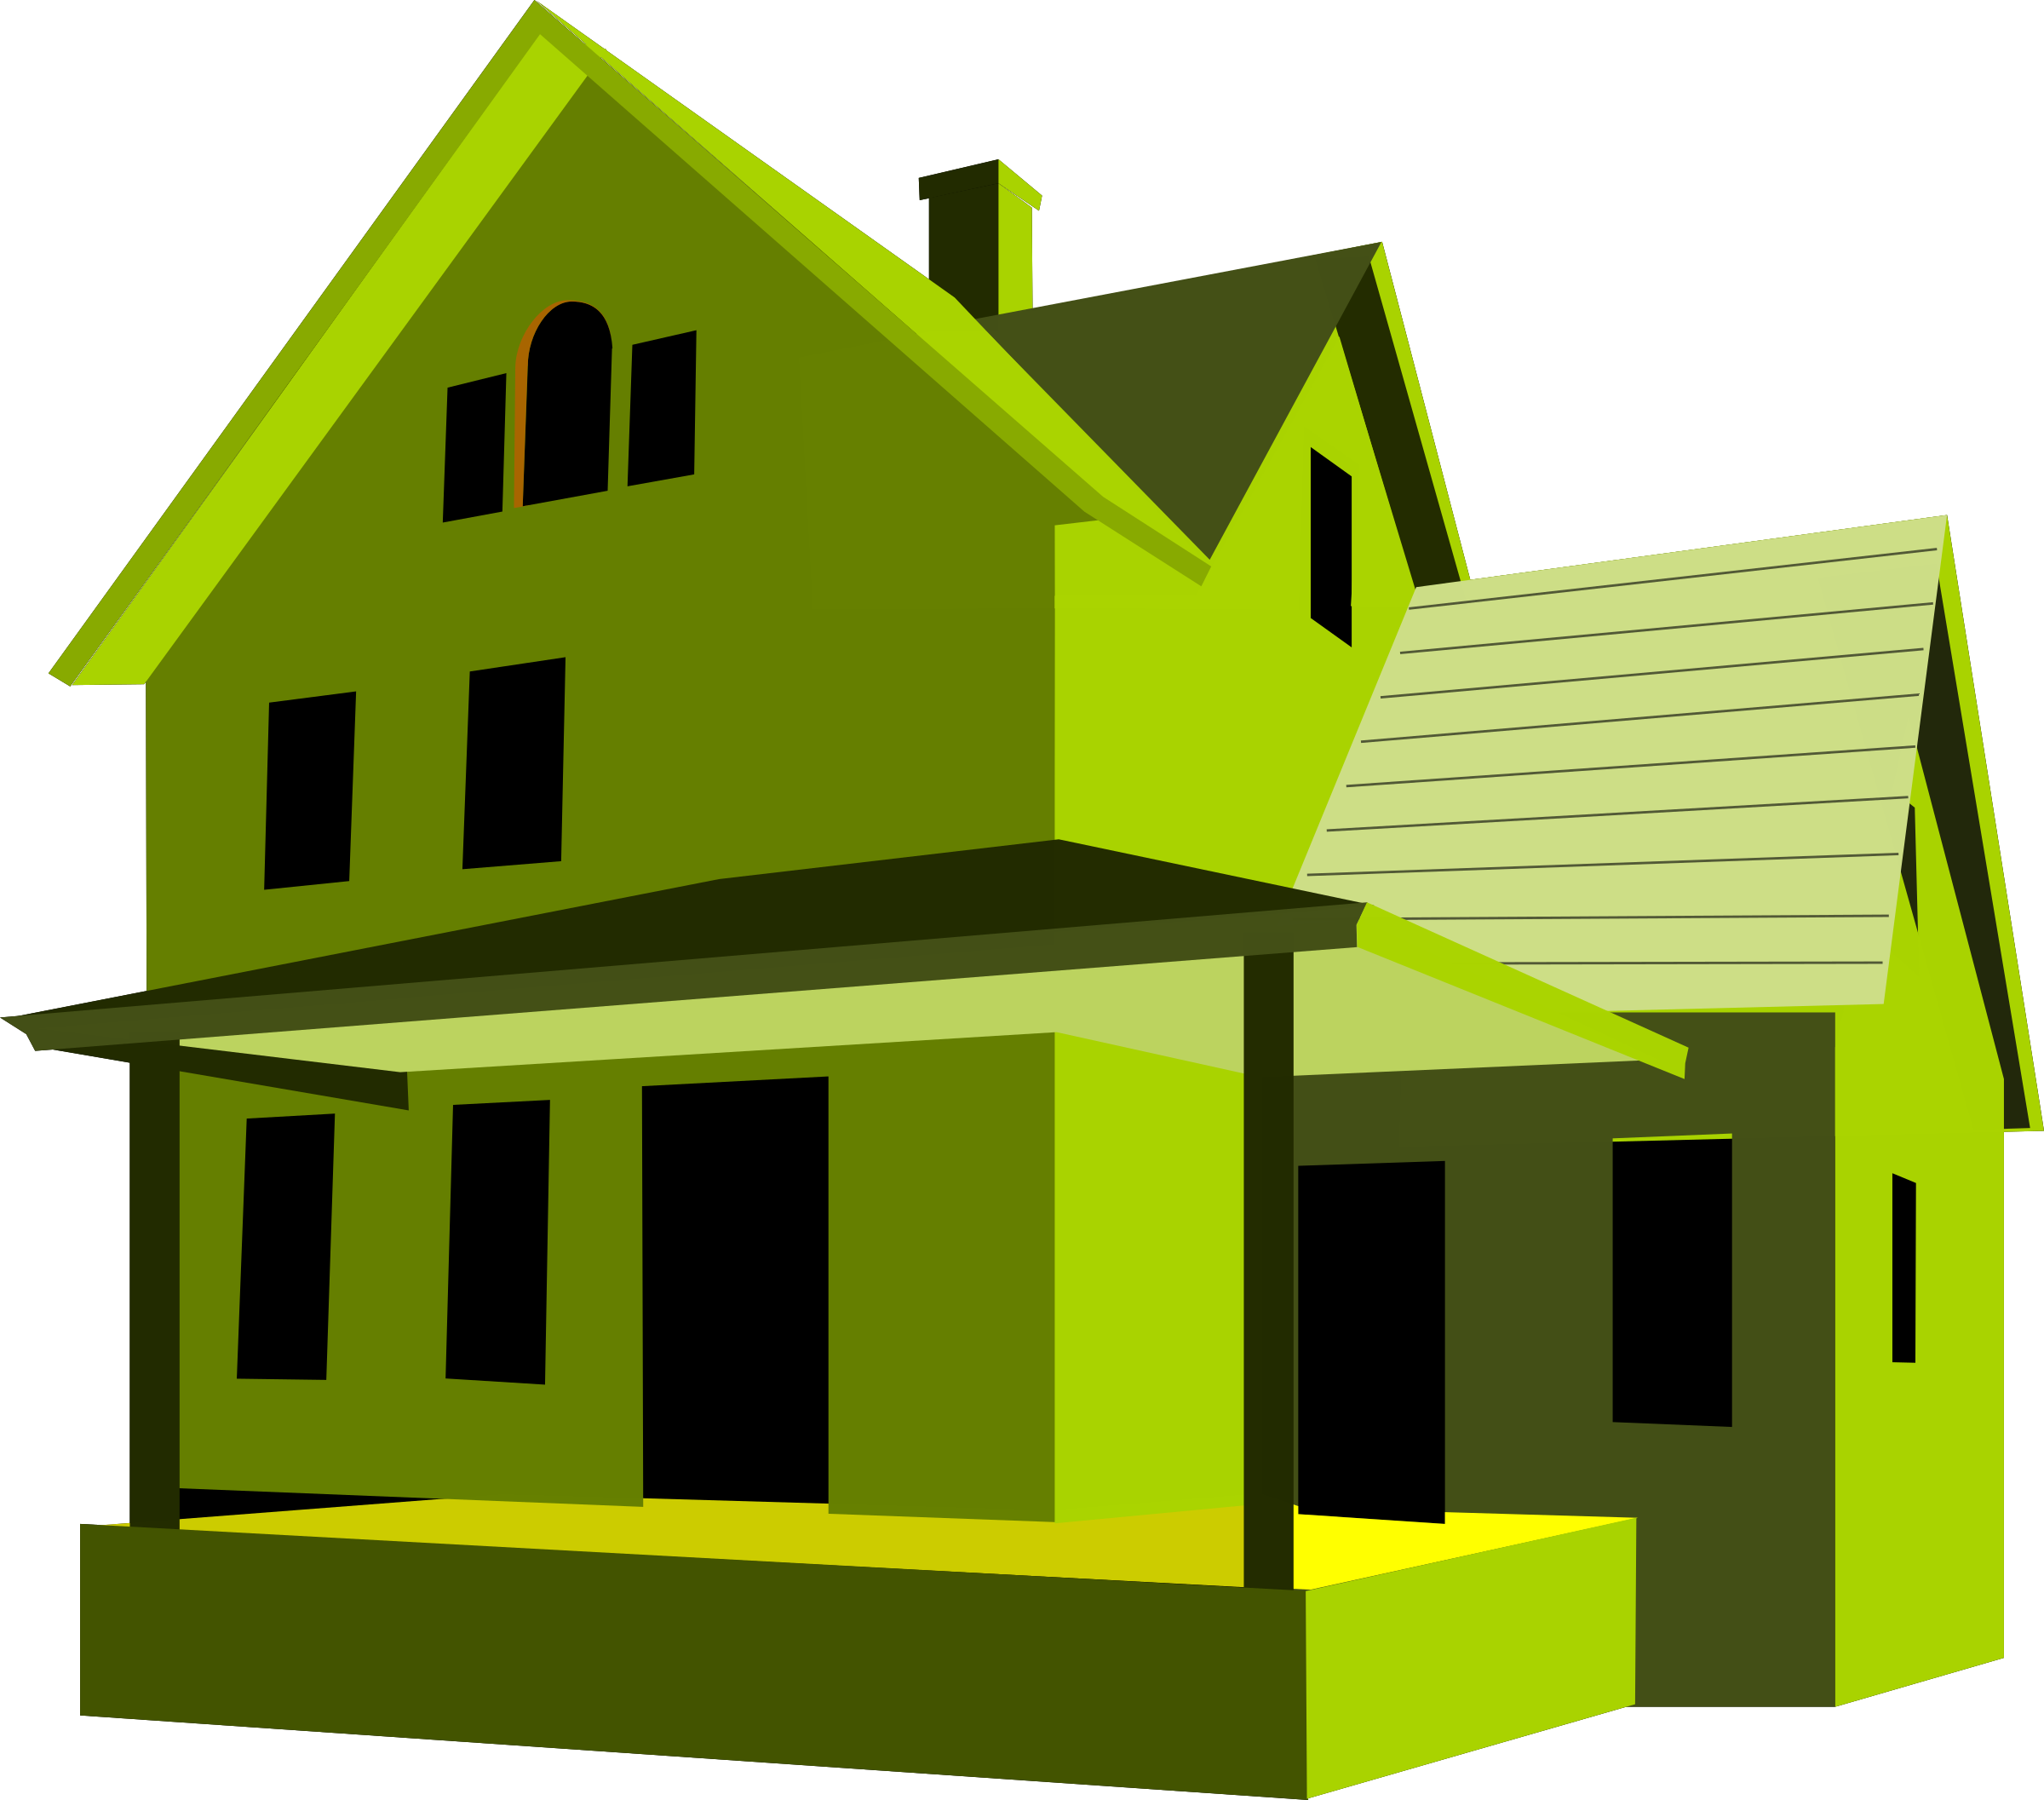 Up clipart house.  collection of transparent